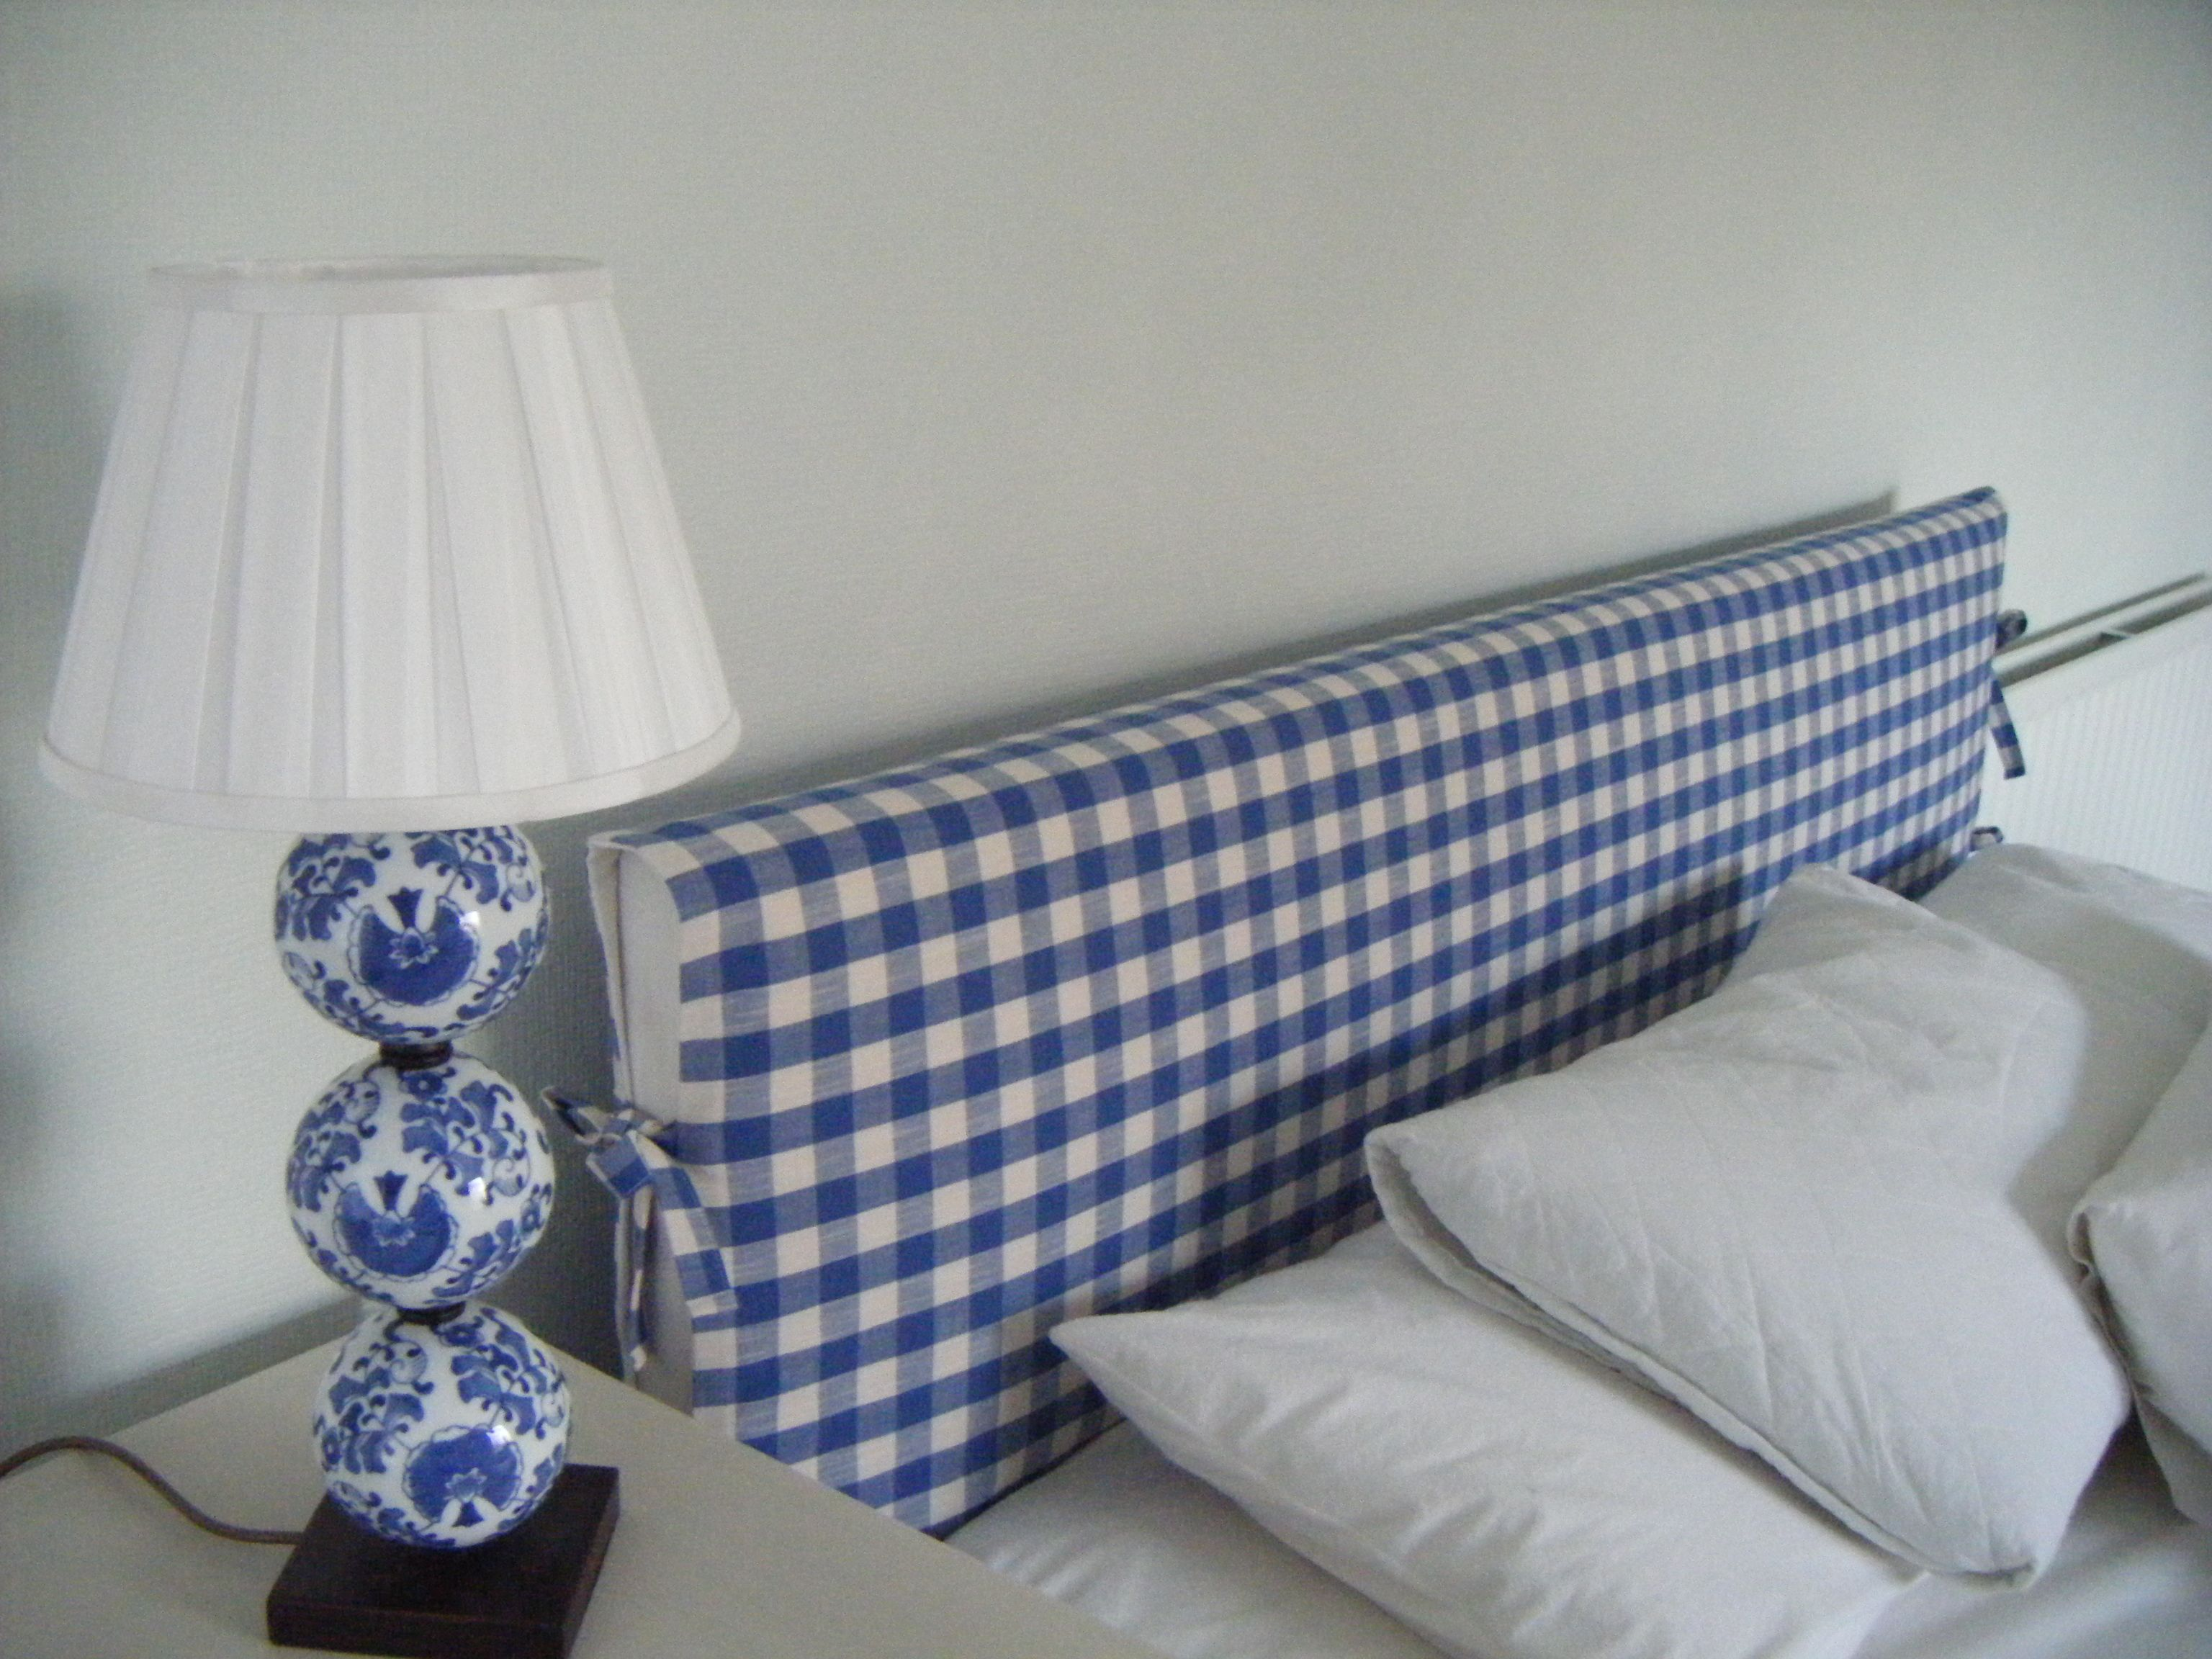 How to cover a headboard - 1000 Images About Bed Headboard Cover On Pinterest Diy